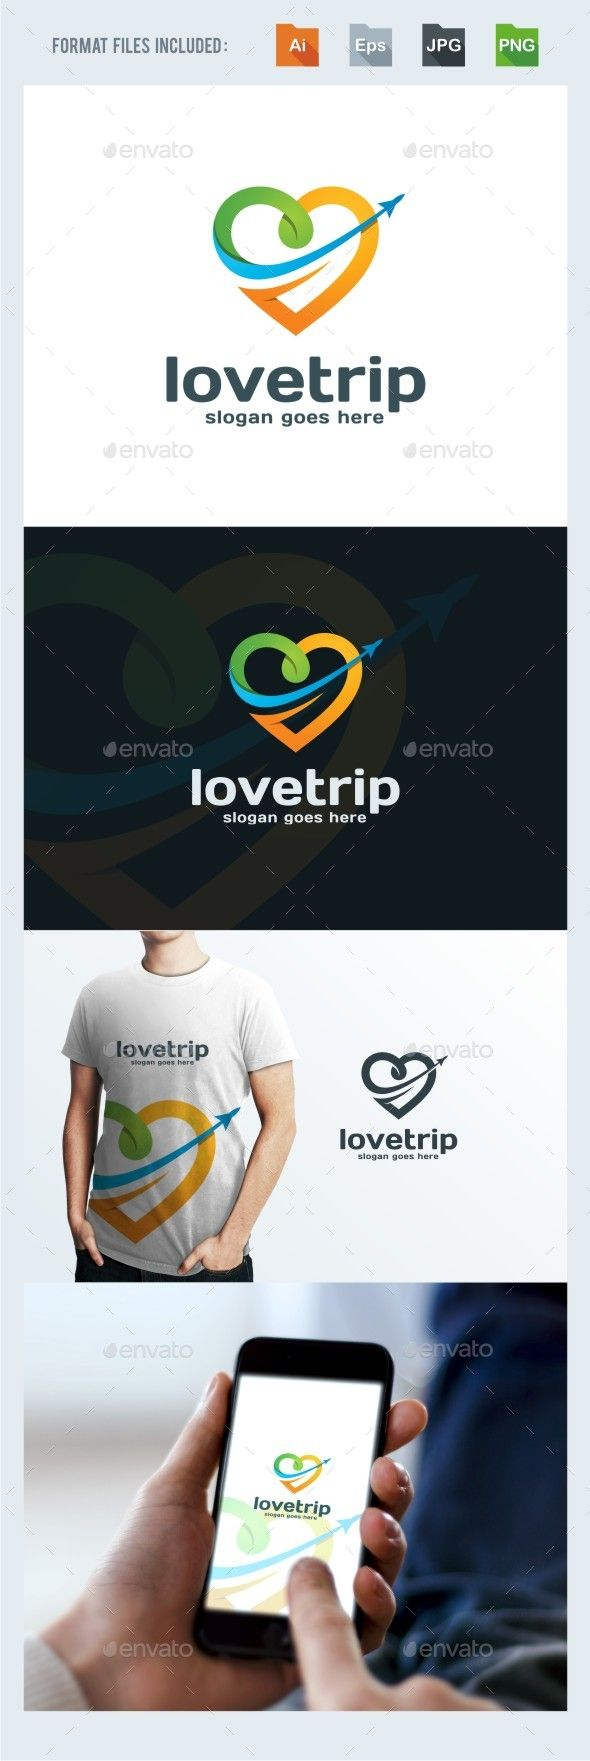 Traveling Logo Template — Transparent PNG #holiday #compass • Available here → https://graphicriver.net/item/traveling-logo-template/15586772?ref=pxcr